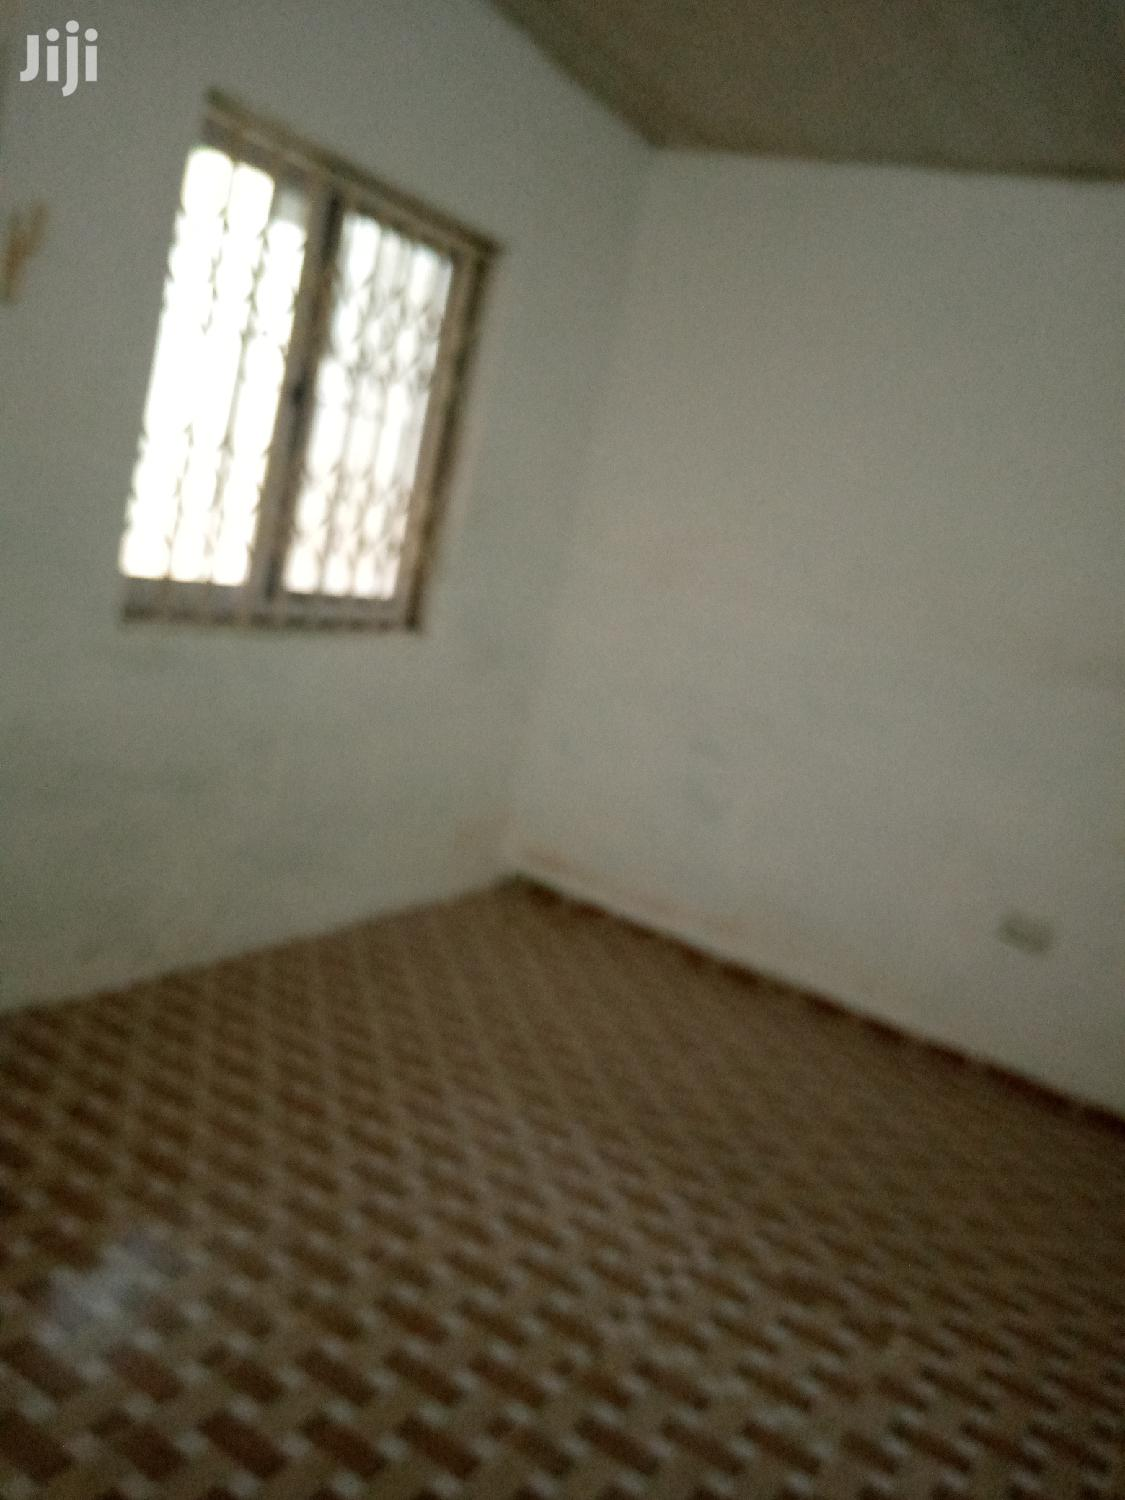 Two Bedroom Apartment 450gh | Houses & Apartments For Rent for sale in Awutu Senya East Municipal, Central Region, Ghana